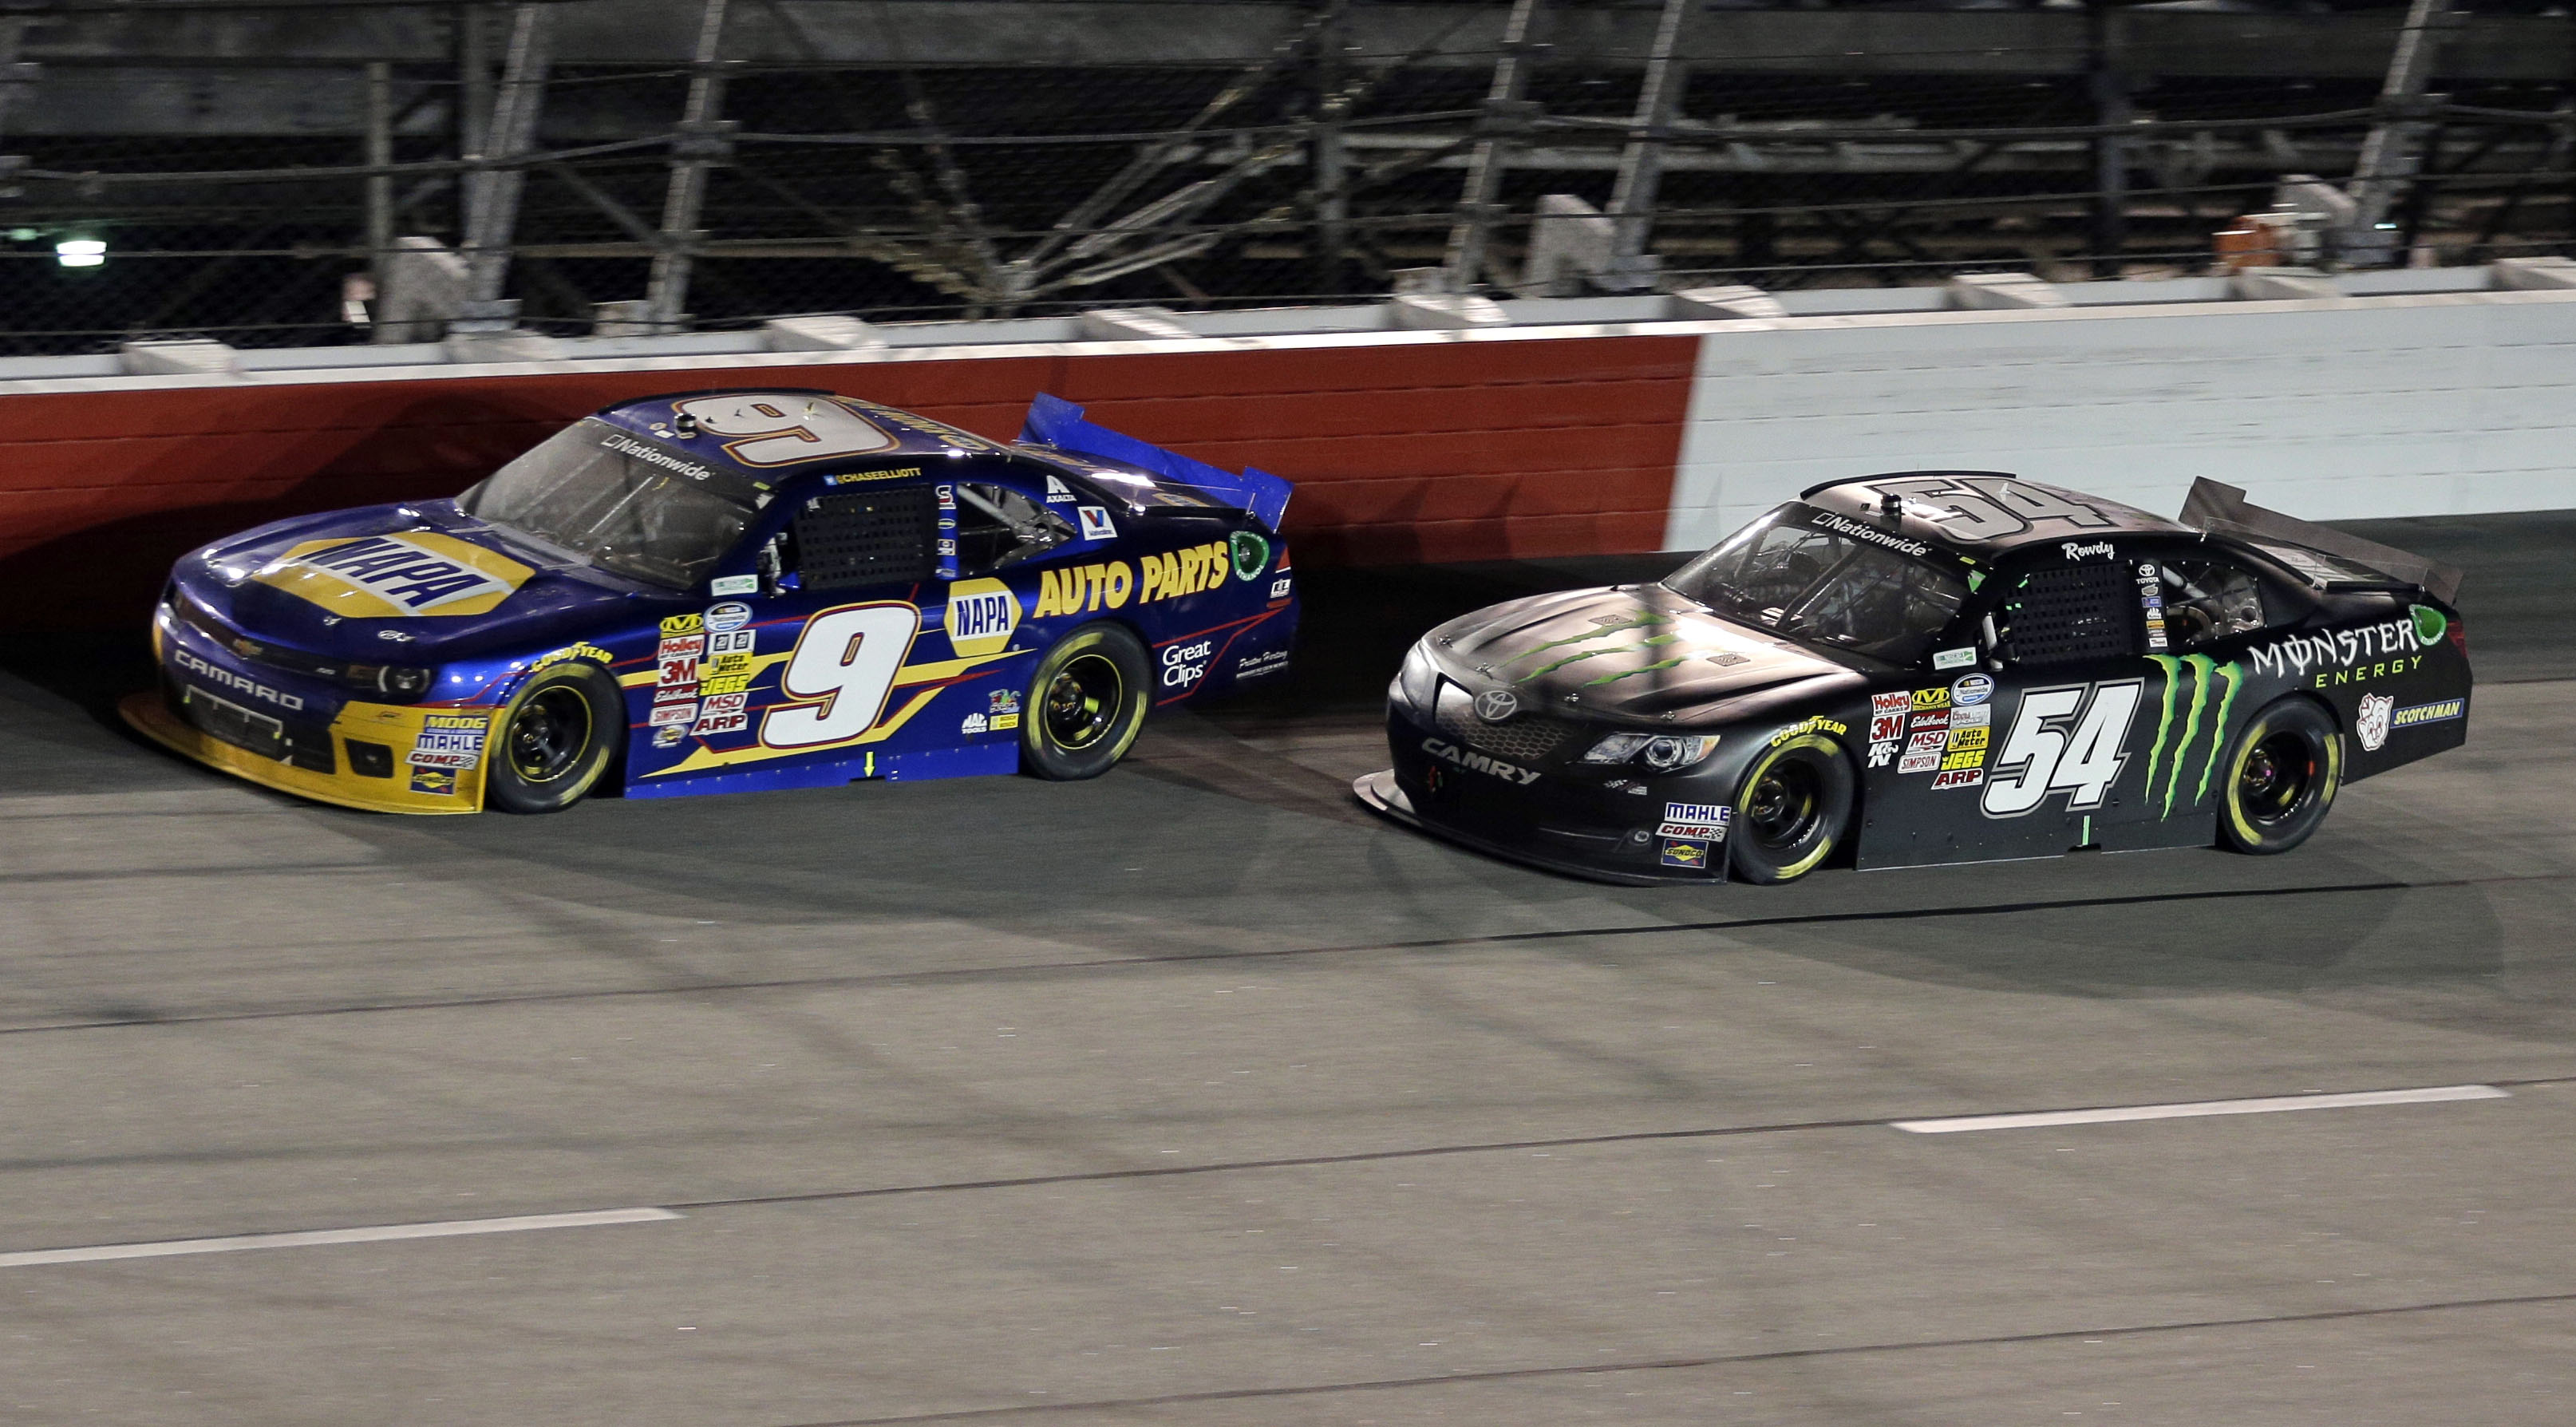 Young Elliott wins 2nd straight Nationwide race